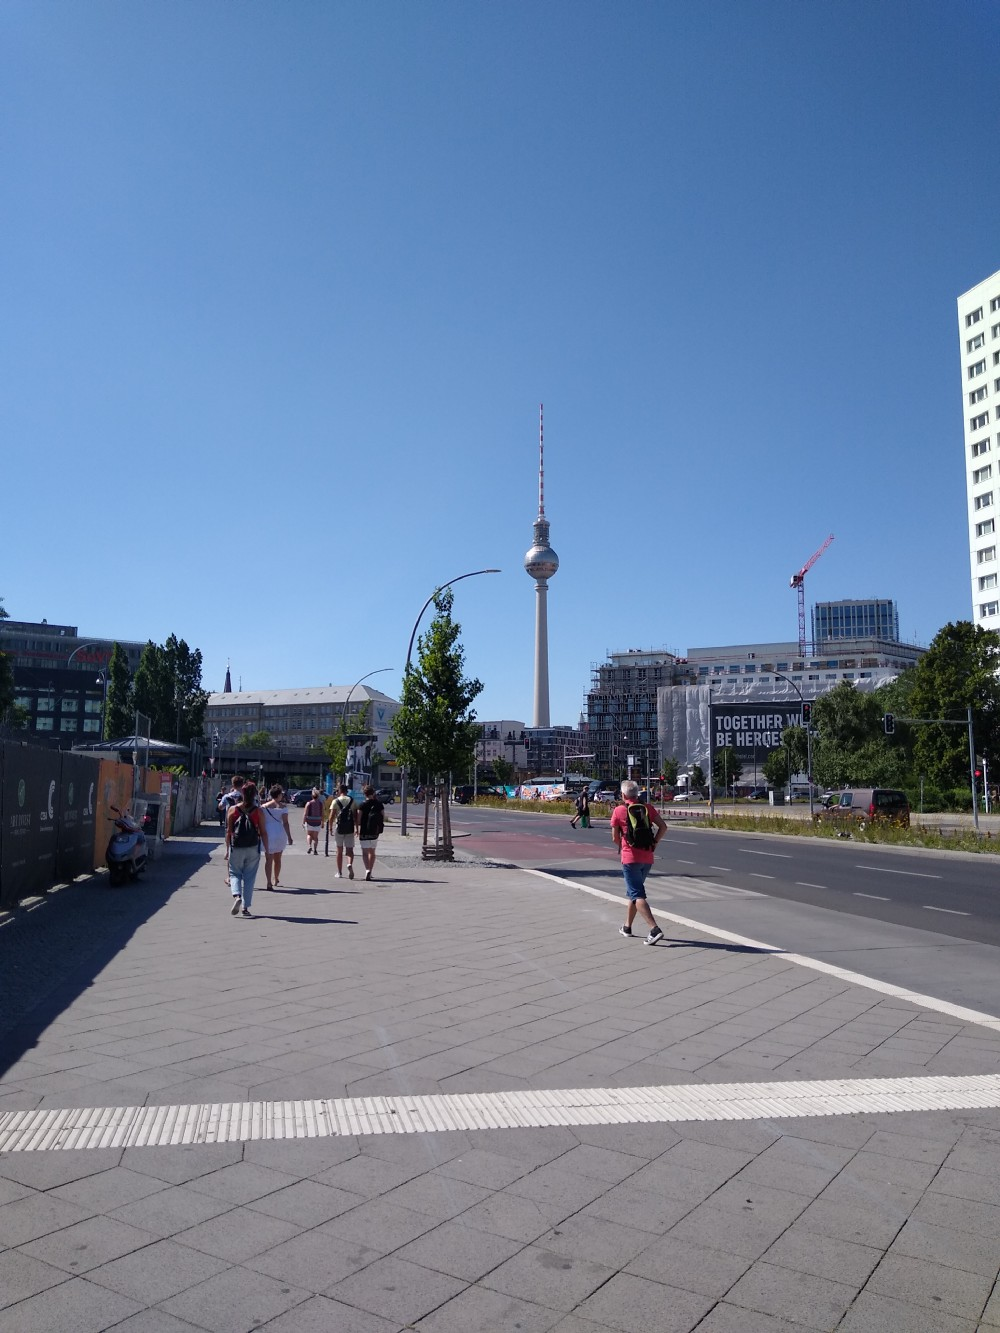 A snapshot of the road leading to Alexanderplatz (Berlin) with the famous TV Tower standing tall in the background.